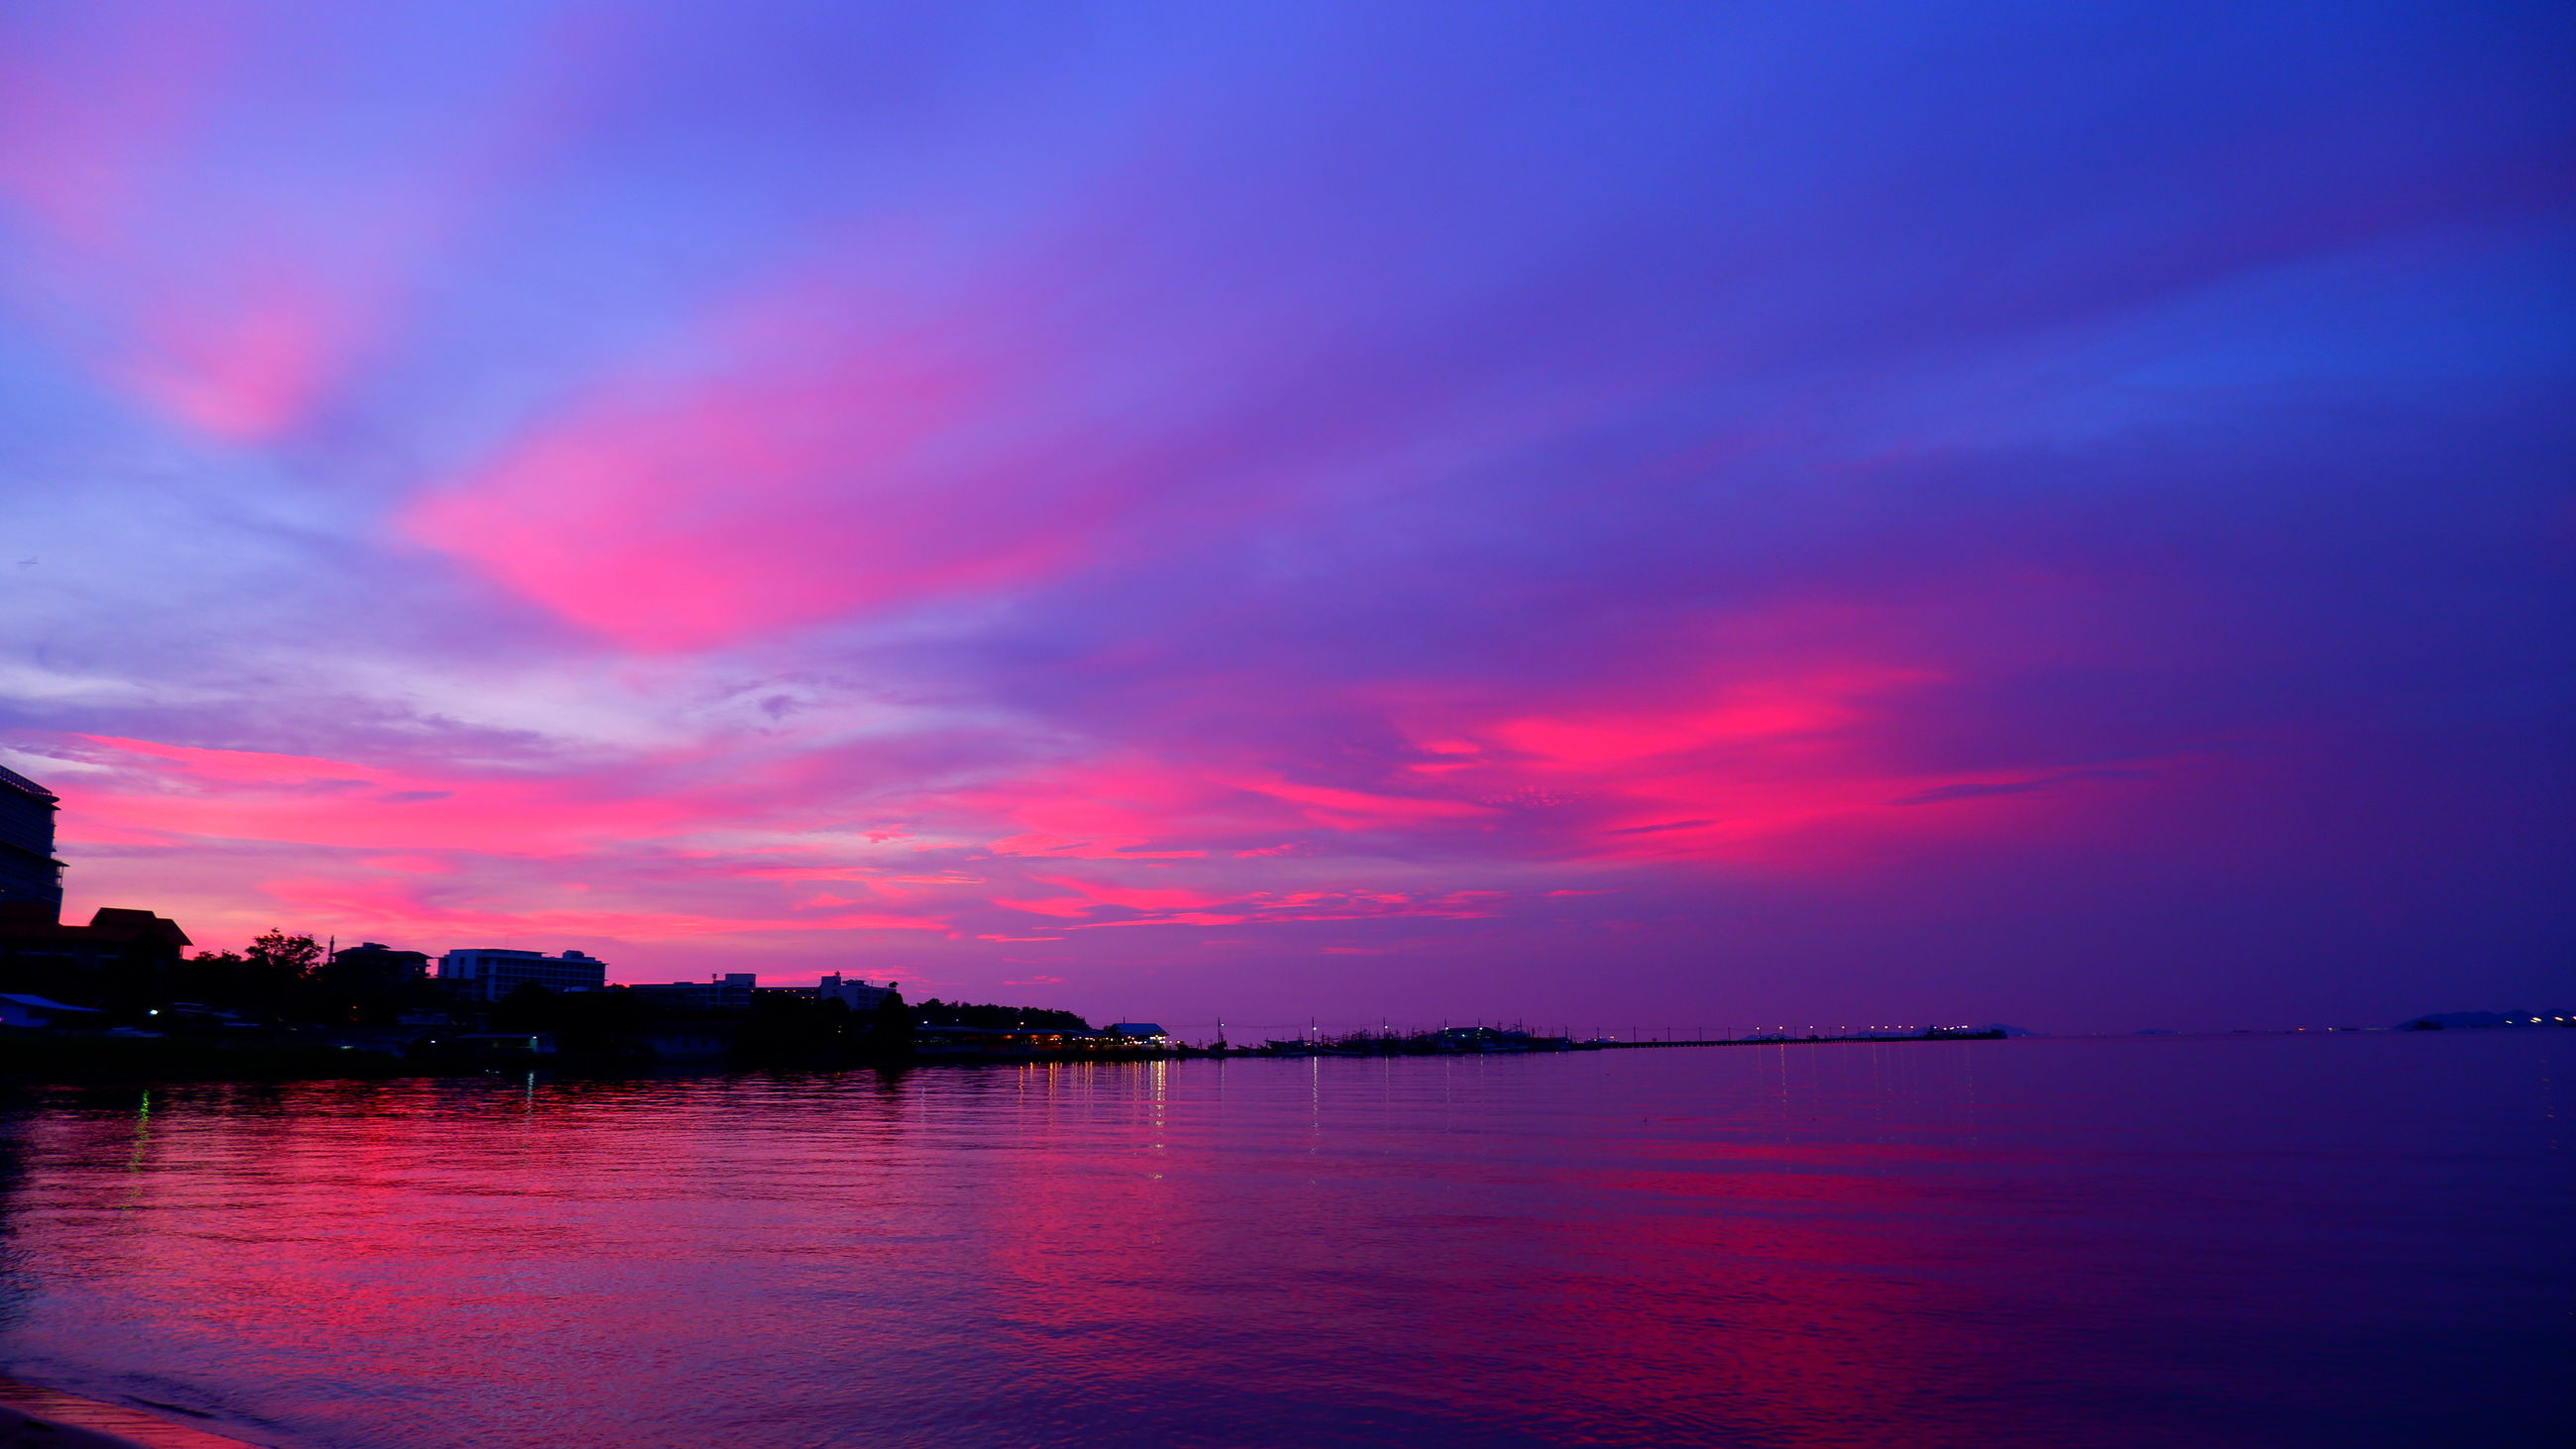 water, sky, afterglow, sunset, beauty in nature, cloud, sea, scenics - nature, horizon, dawn, reflection, nature, tranquility, tranquil scene, no people, architecture, evening, landscape, red sky at morning, multi colored, travel destinations, dramatic sky, outdoors, city, pink, idyllic, silhouette, purple, night, blue, environment, beach, magenta, travel, land, built structure